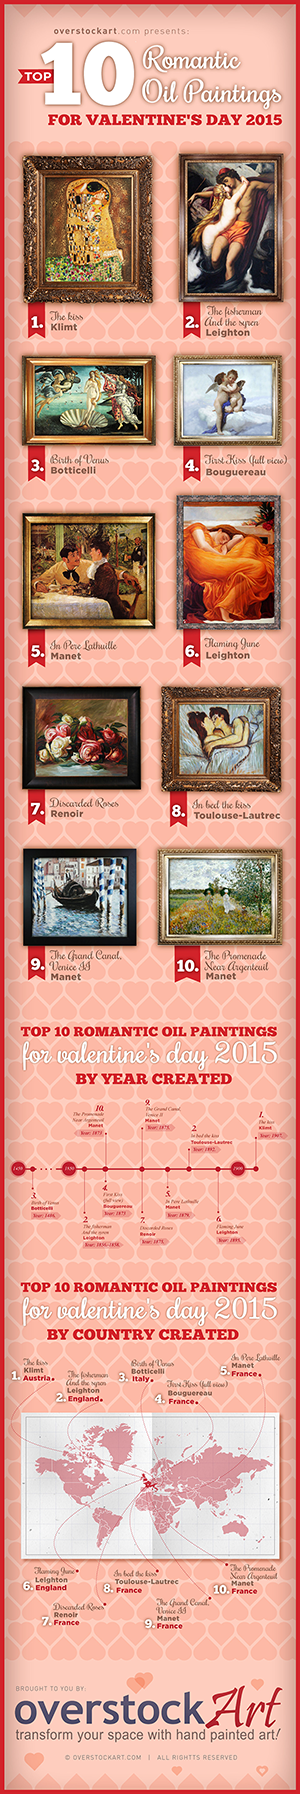 Top 10 Art for Valentine's Day 2015 List